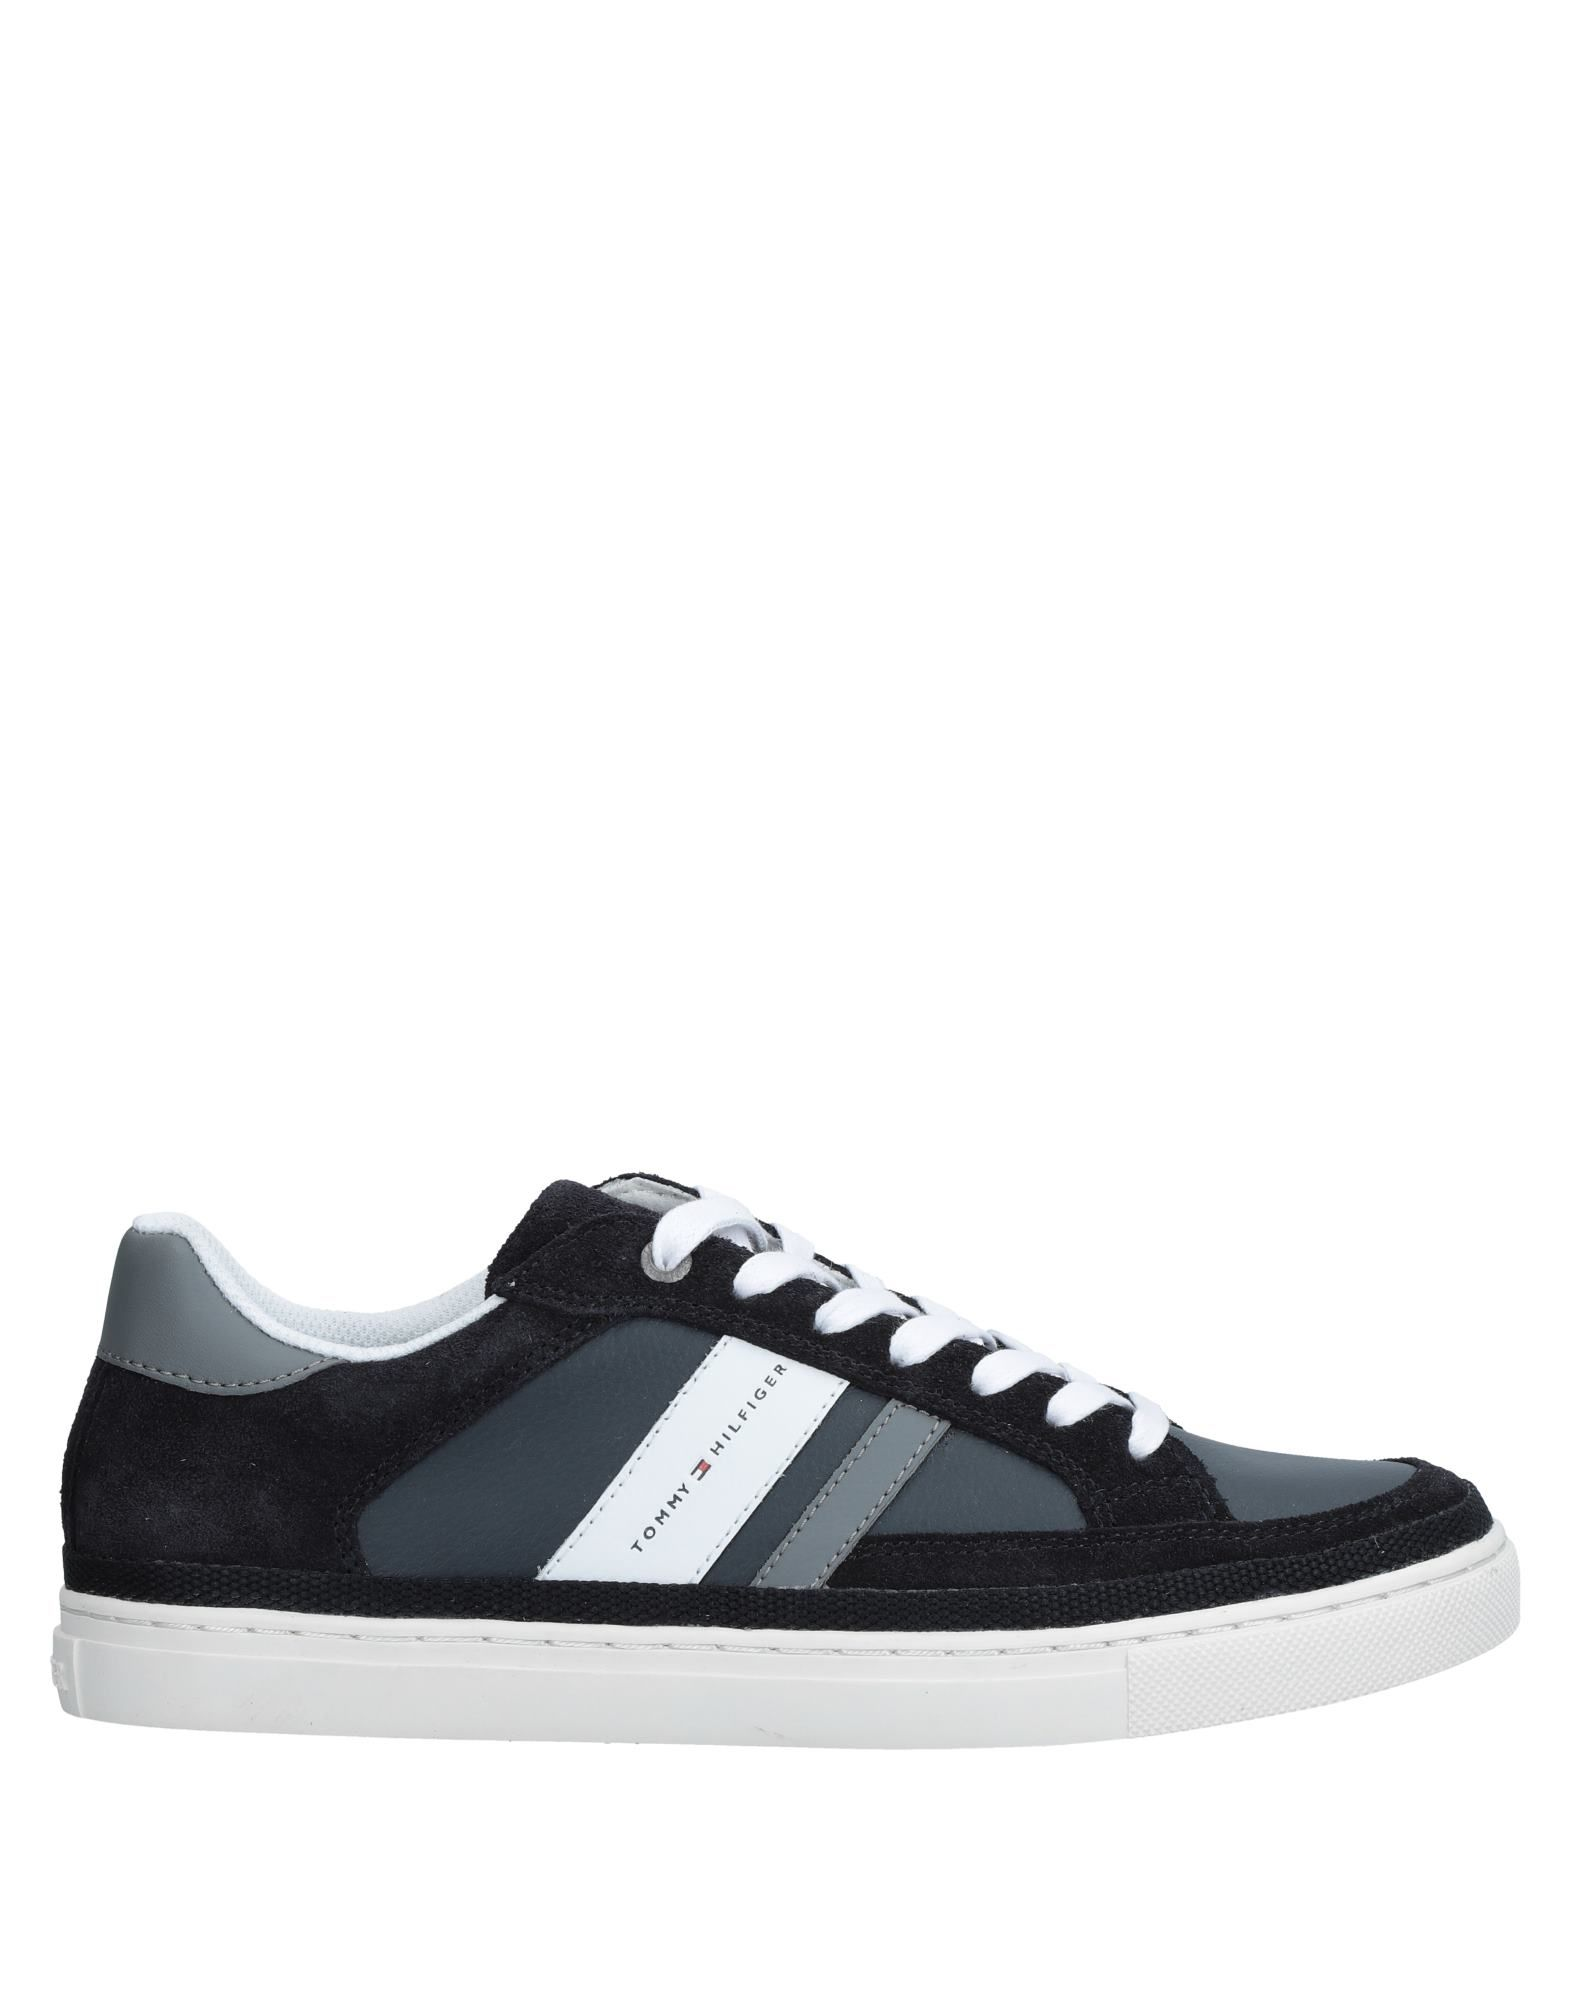 Sneakers Tommy Hilfiger Uomo - 11542776VA